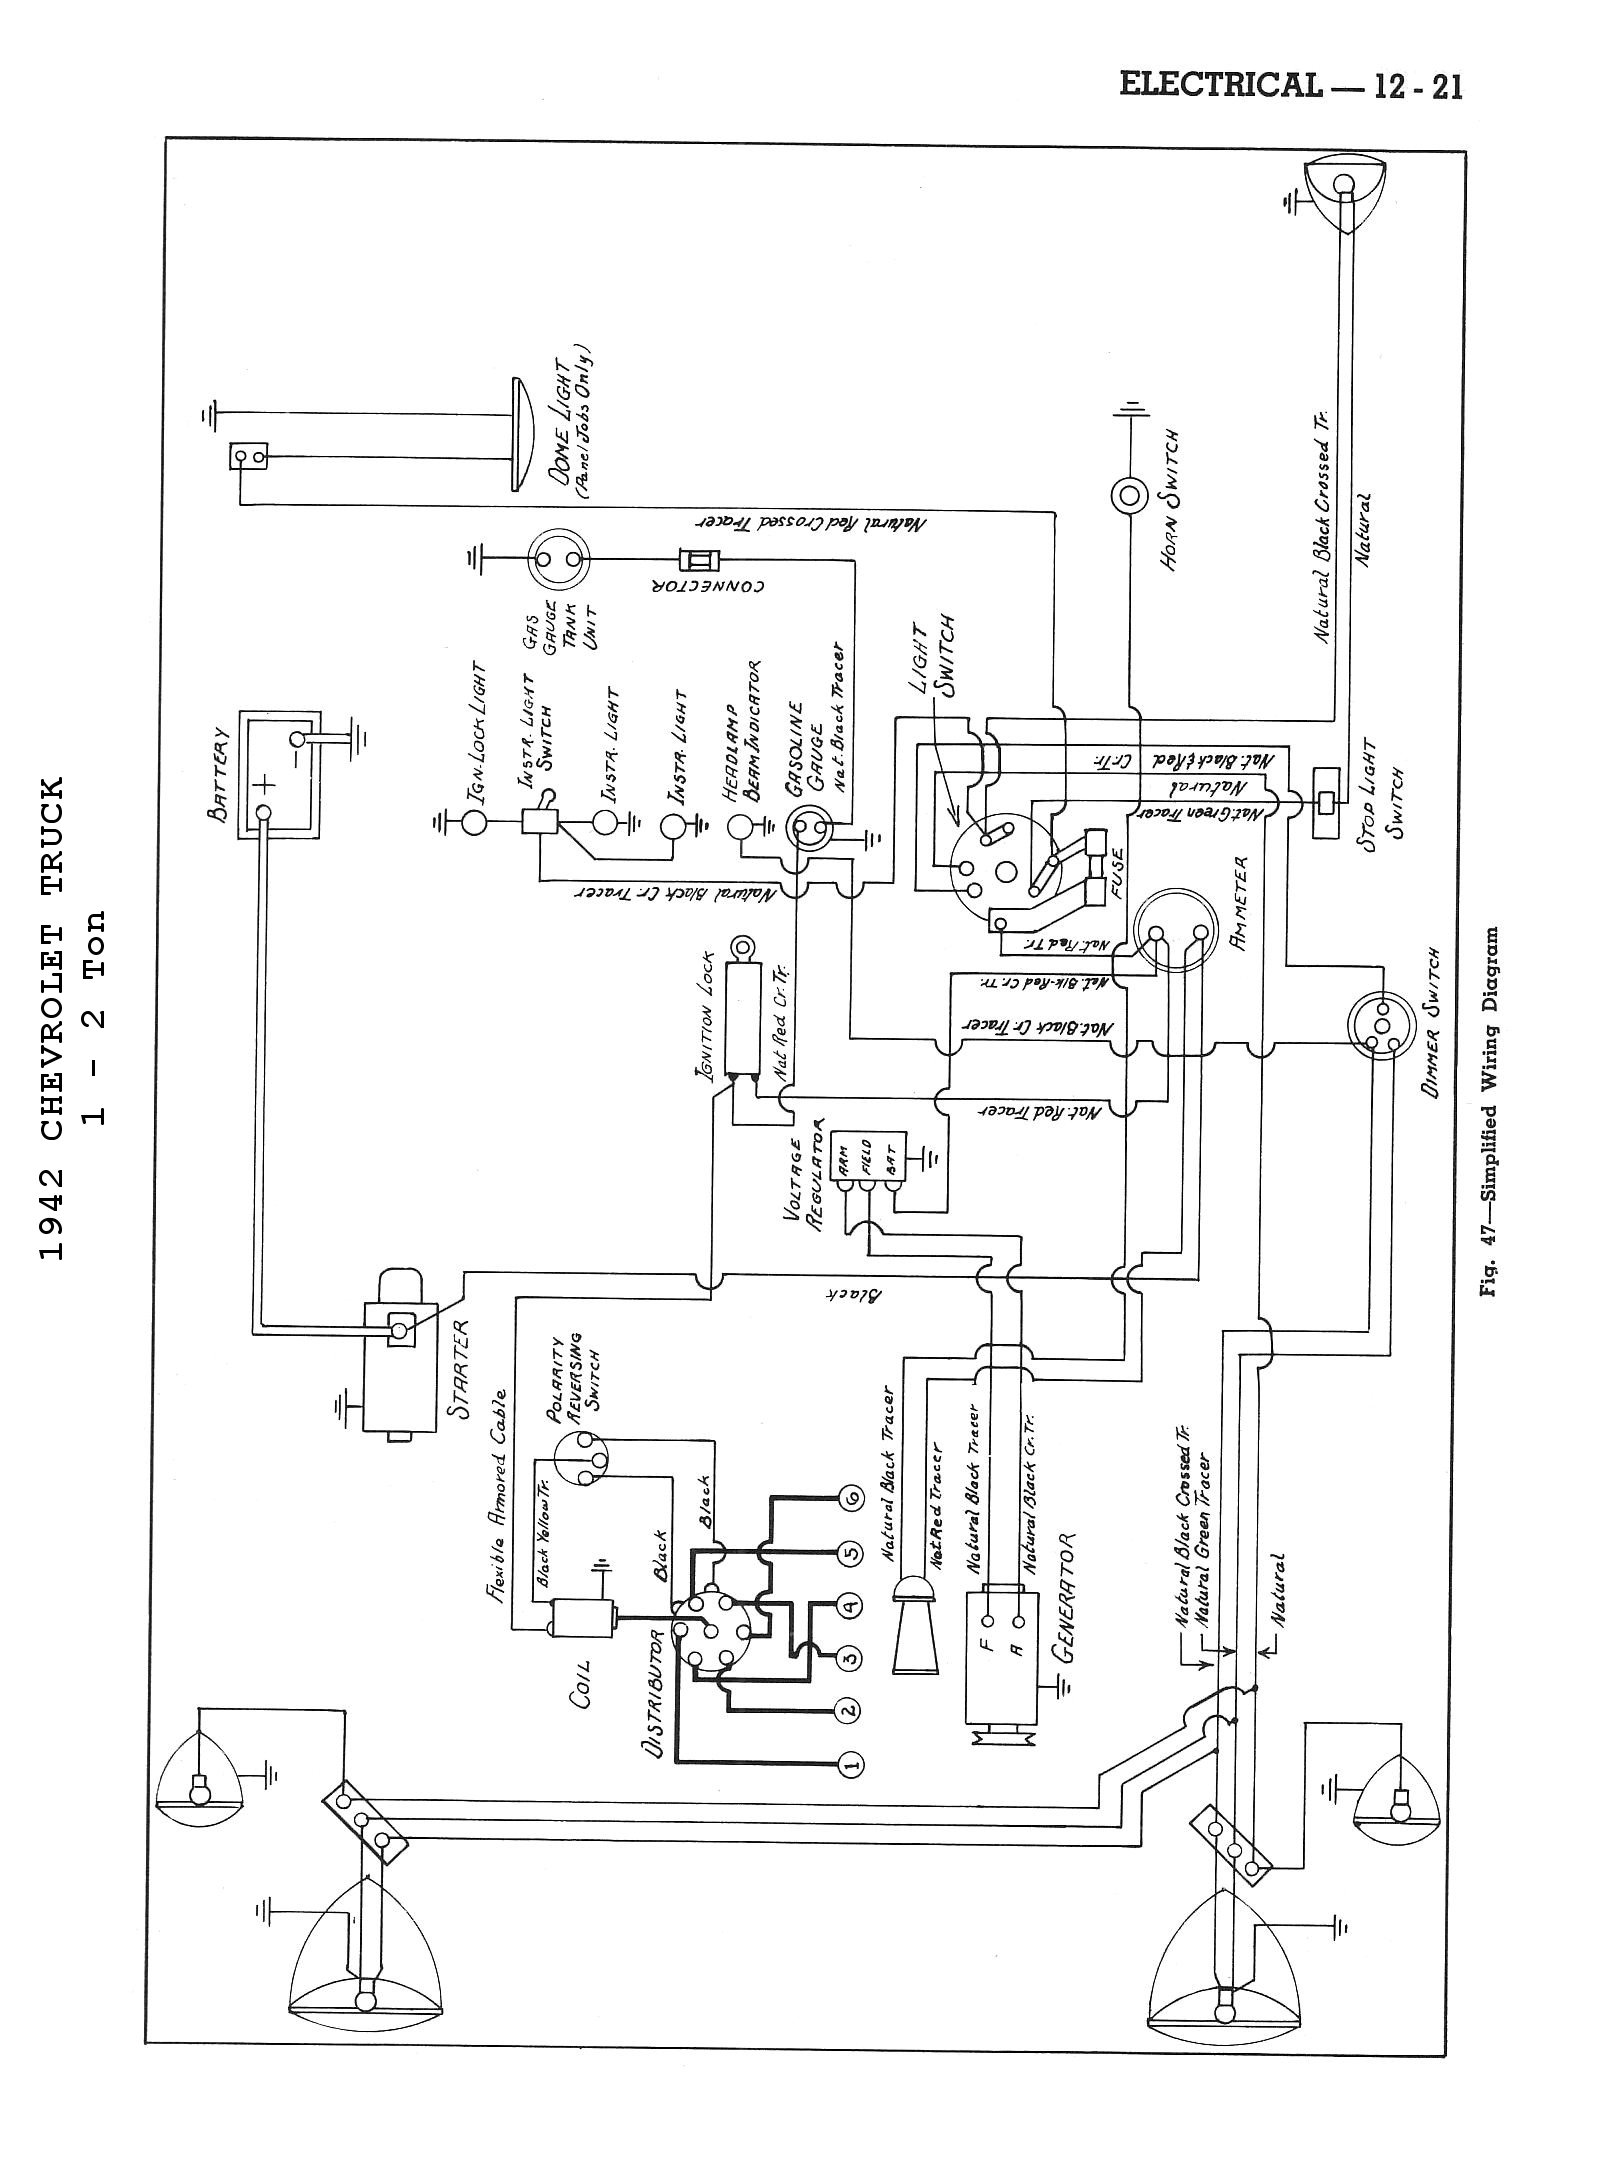 42cm4x2t1221 chevy wiring diagrams truck wiring diagrams at edmiracle.co